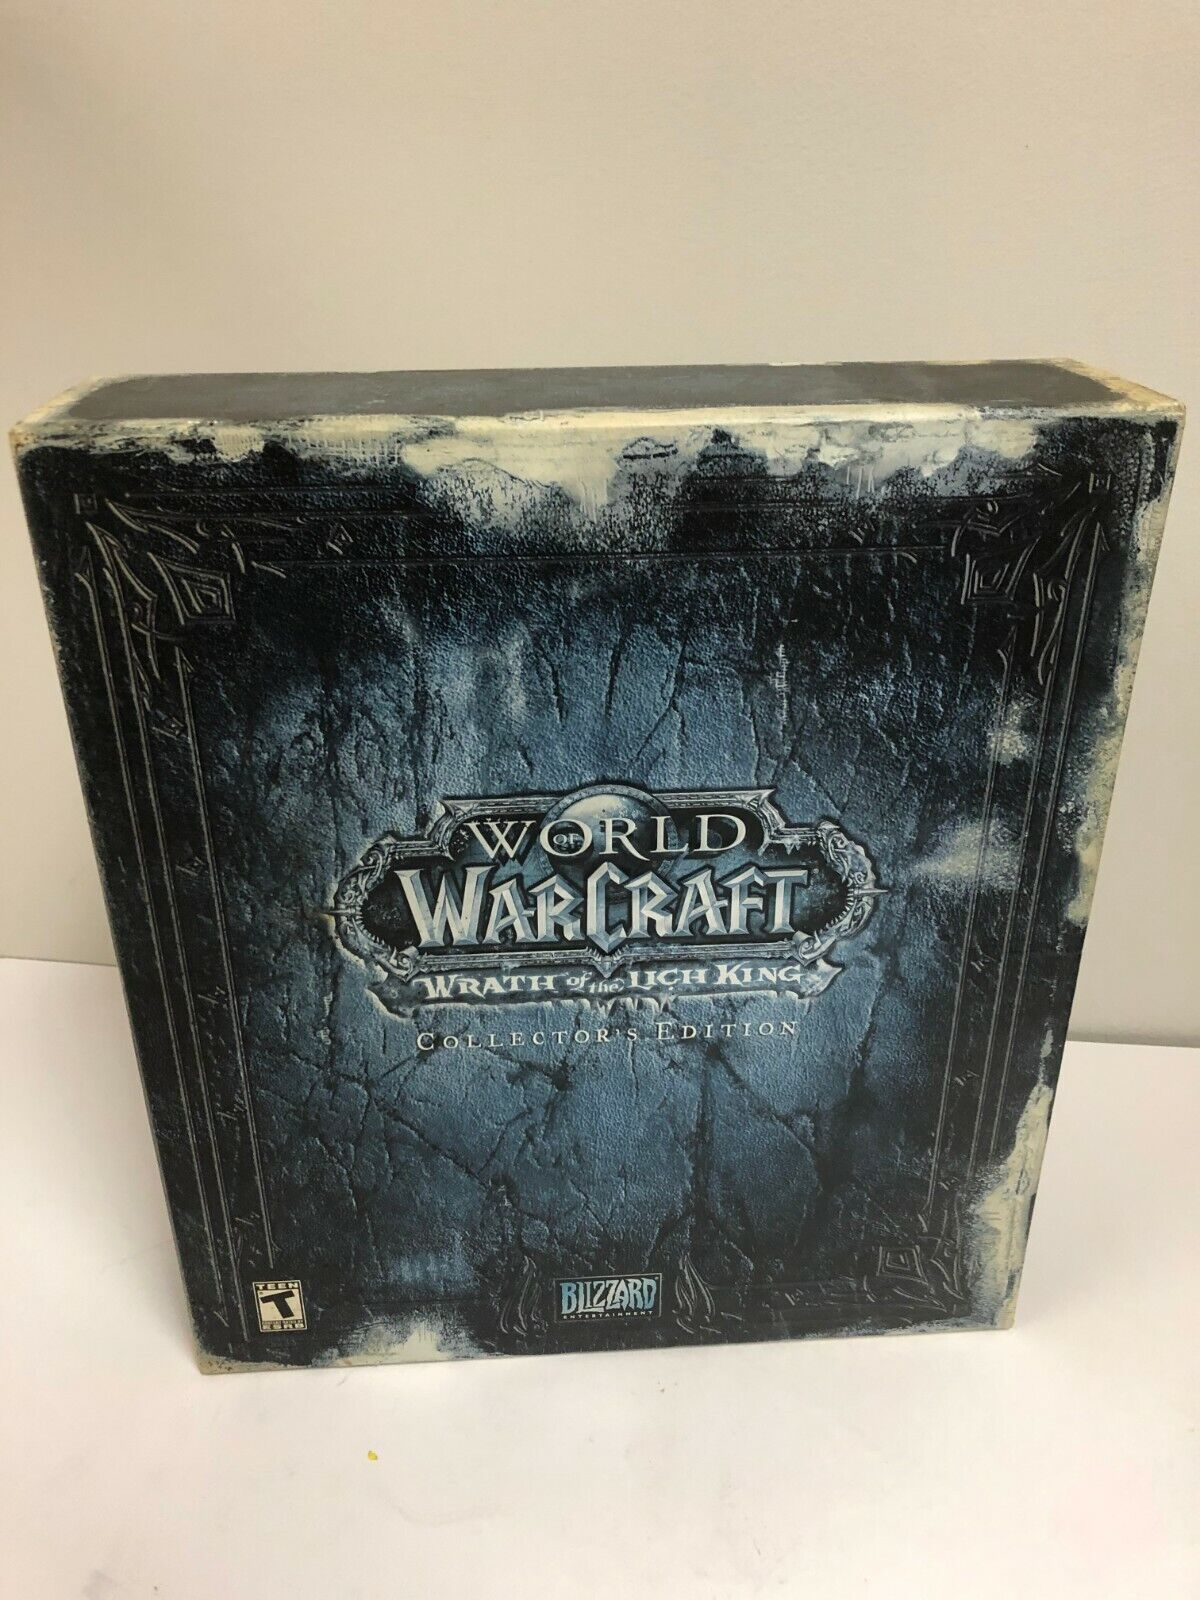 World Of Warcraft Wrath Of The Lich King Collector s Edition - NO GAME READ - $99.95